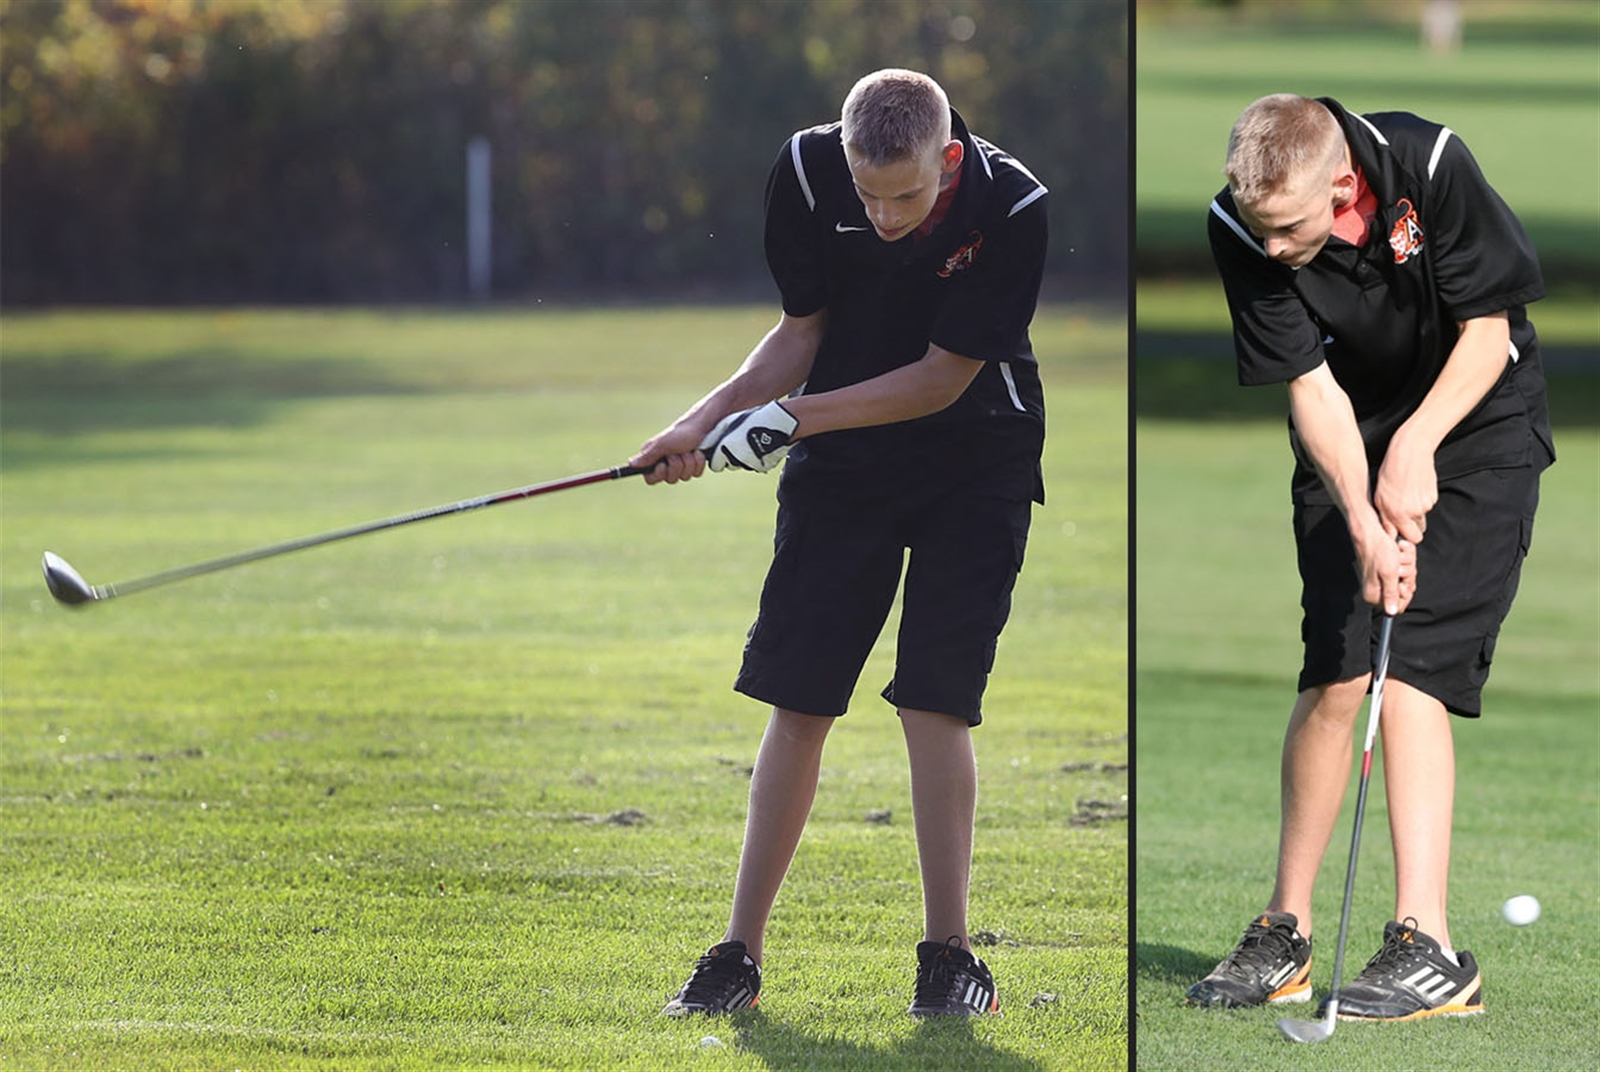 Nathan Forrestel played his first varsity golf of his high school career. Nate, who was born with cerebral palsy, hits onto the first tee. Forrestel went through his pre-shot routine, then let it rip.